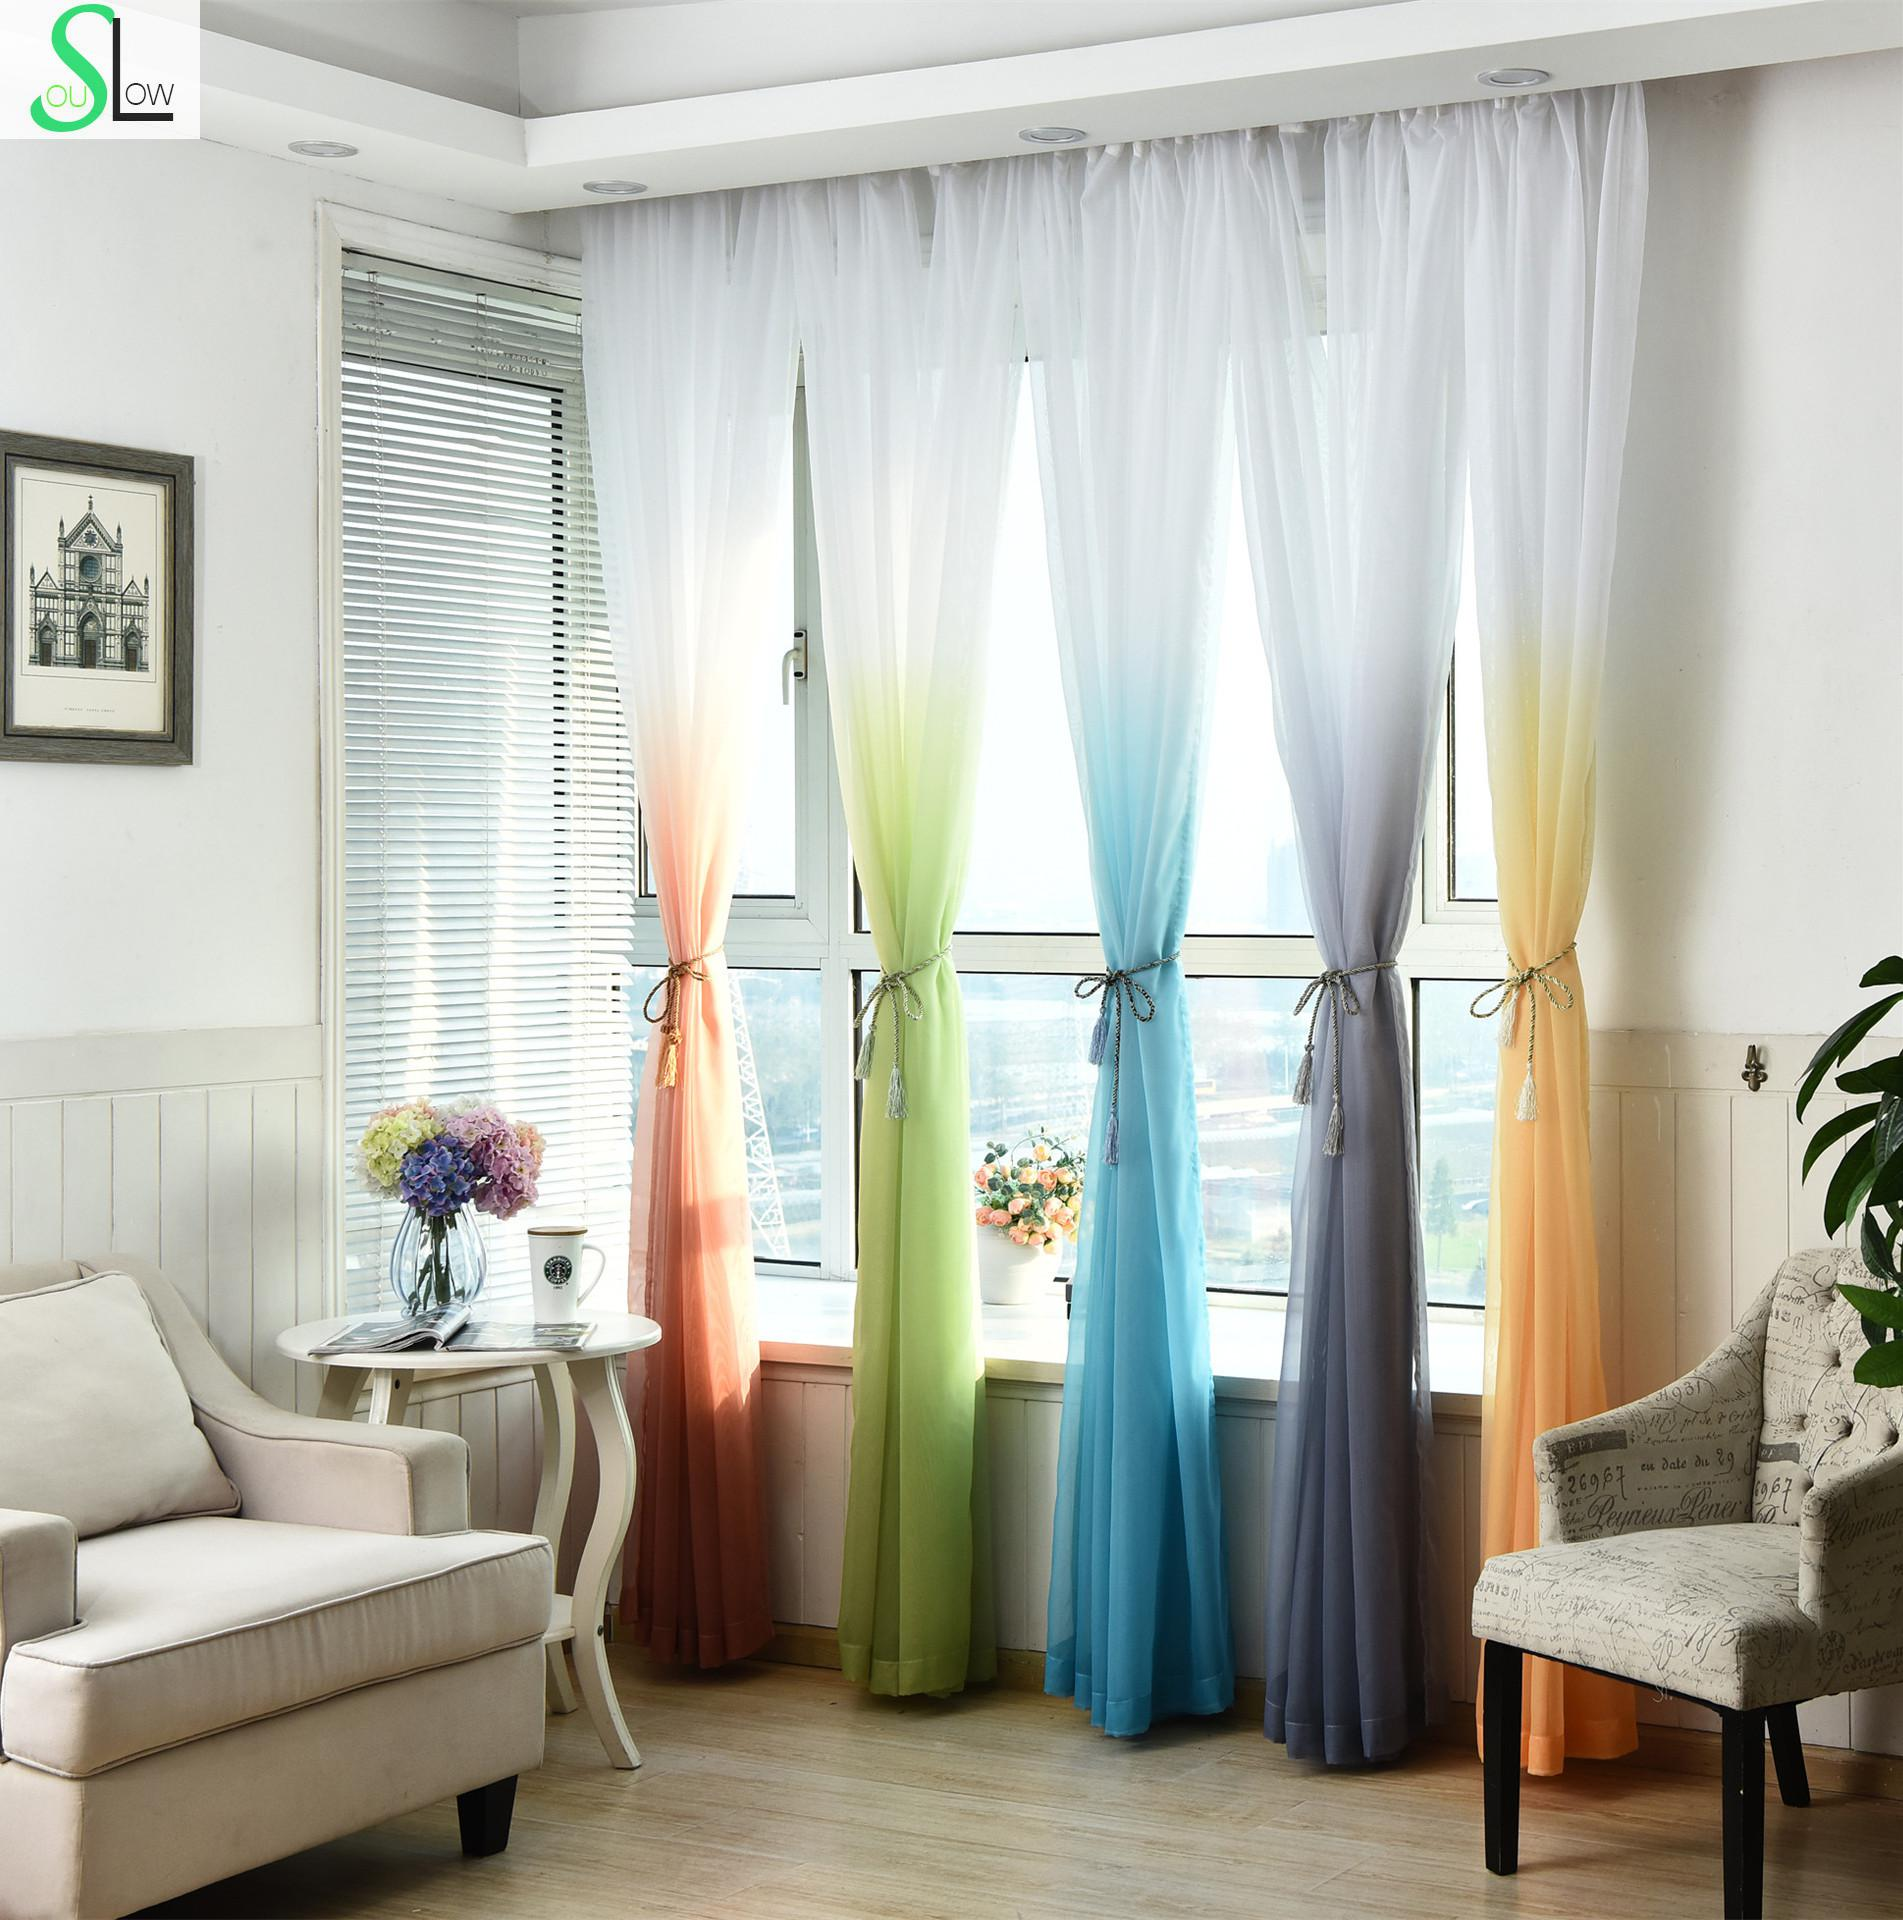 Orange curtains bedroom - Slow Soul Coffee Powder Light Green Blue Purple Orange Wedding Curtain Solid Tulle Curtains For Living Room Bedroom Decoration